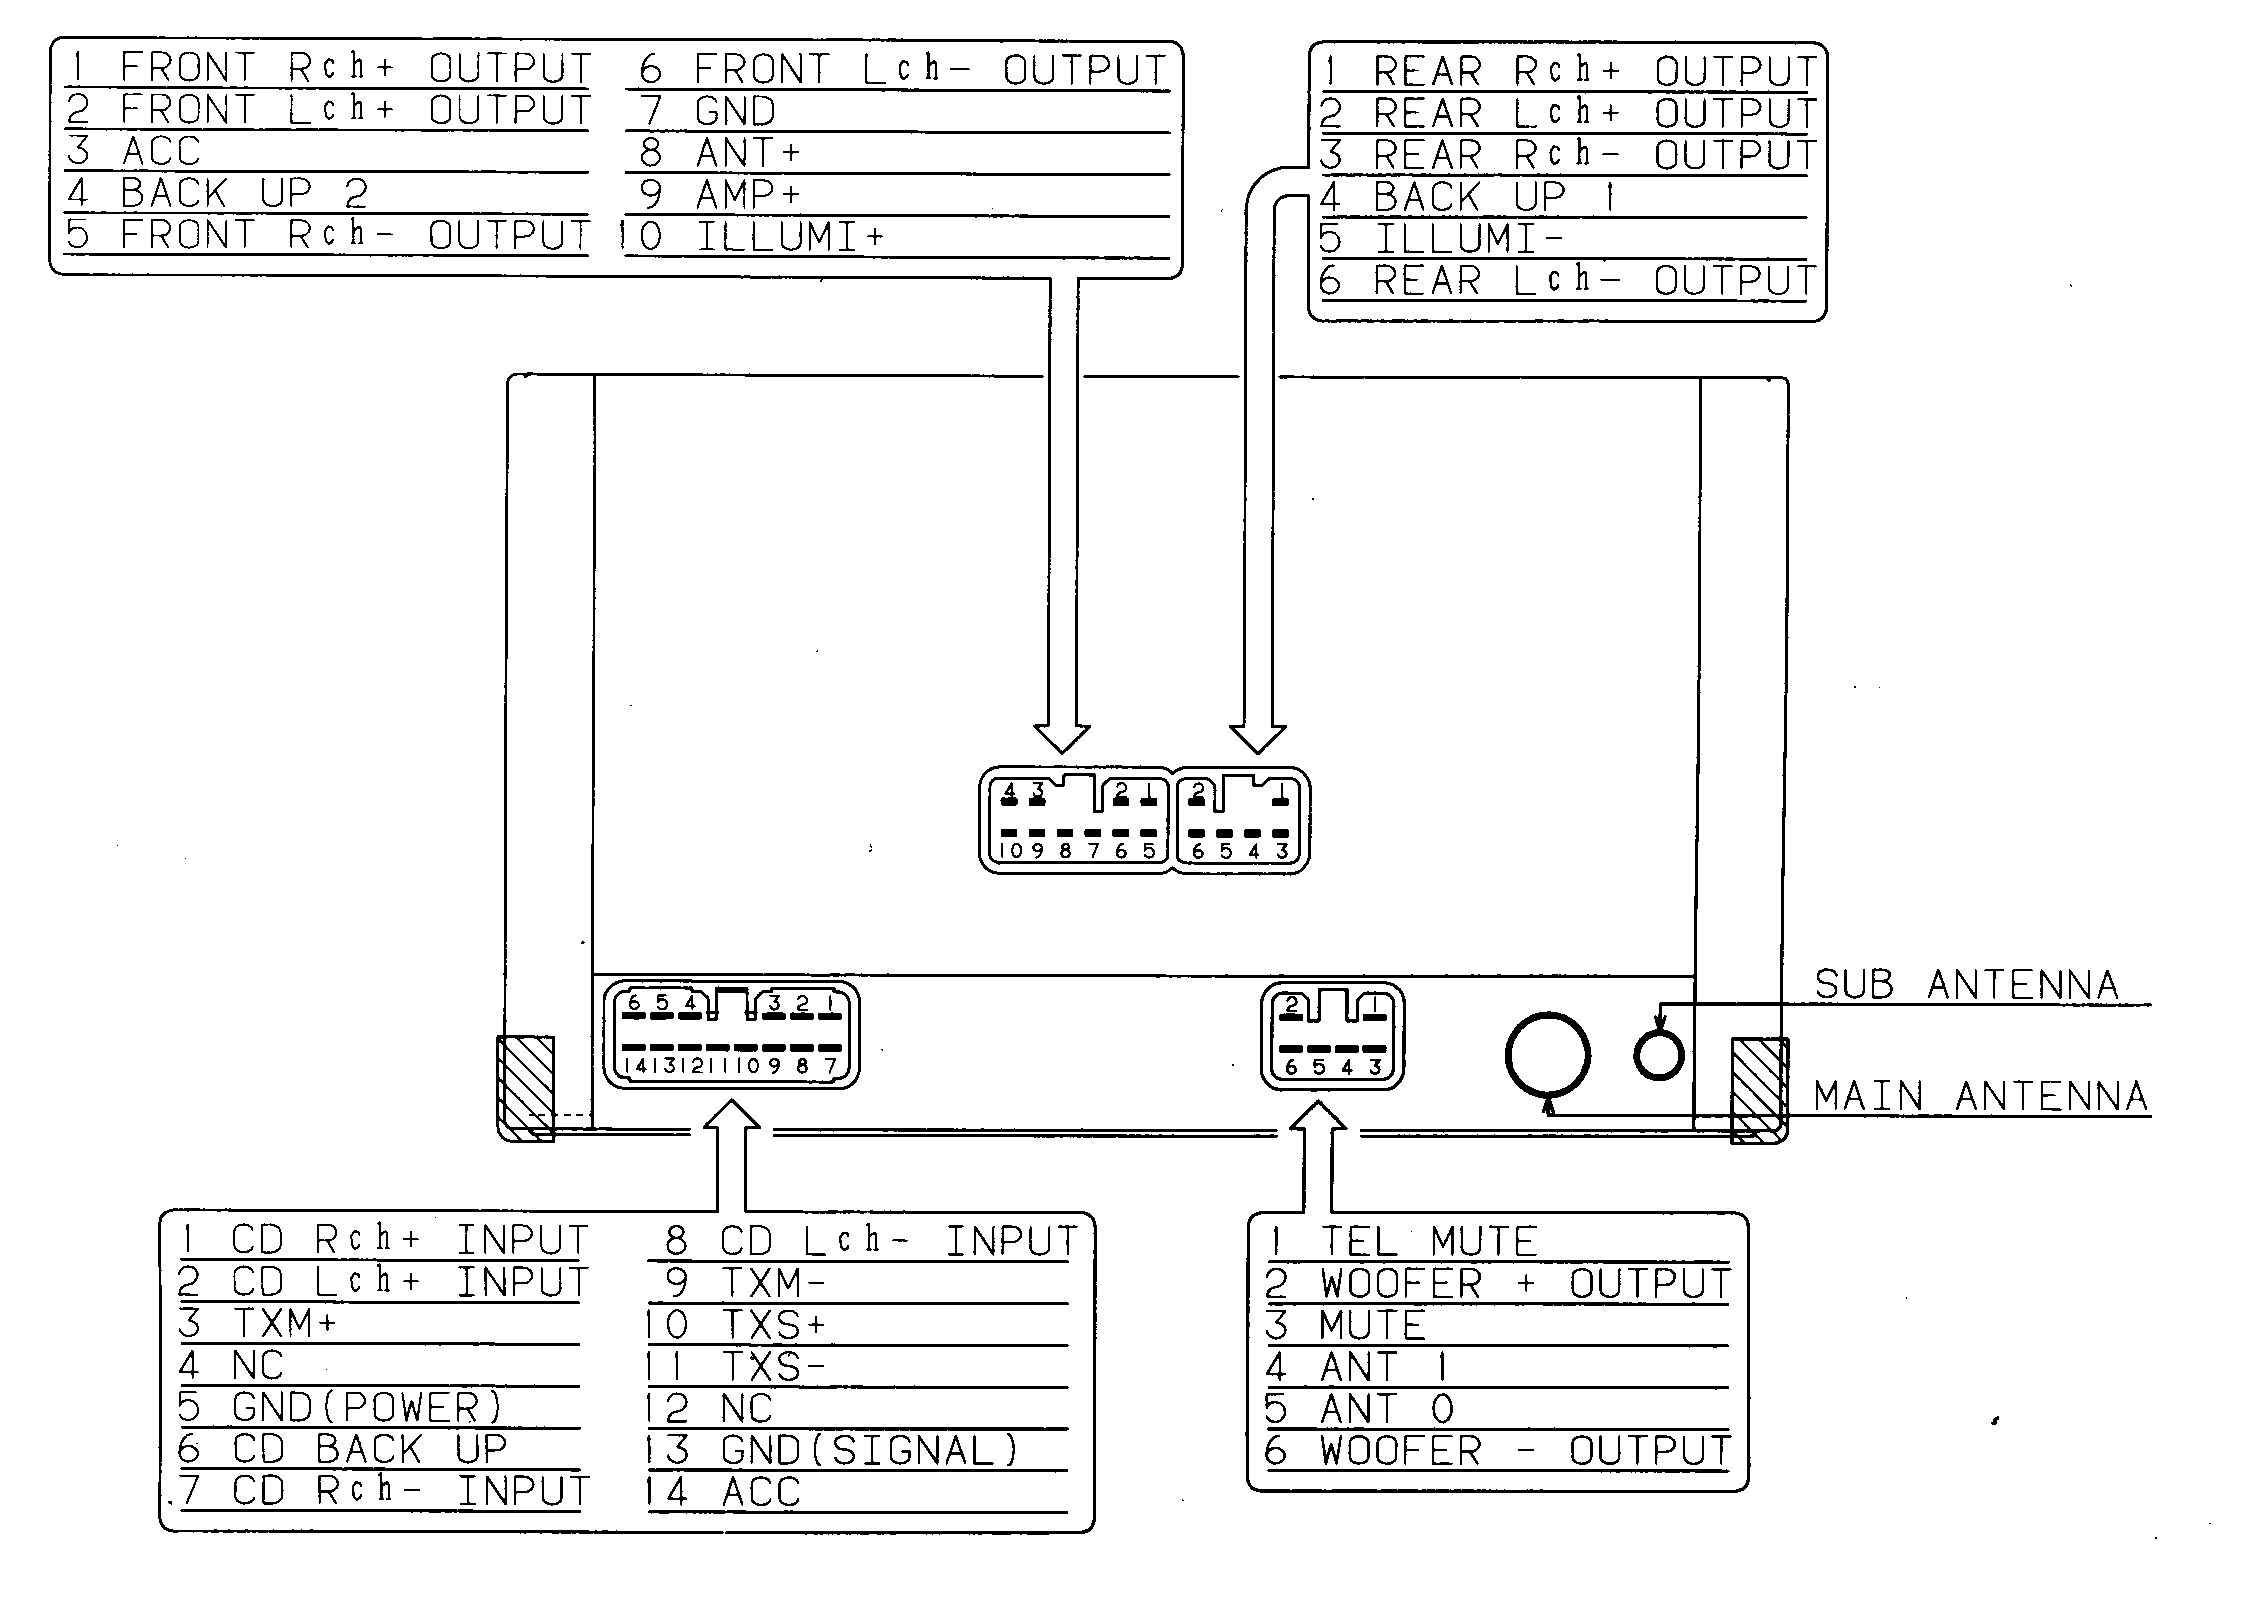 WireHarnessLexus121001 car audio wire diagram codes lexus factory car stereo repair radio diagram at bakdesigns.co